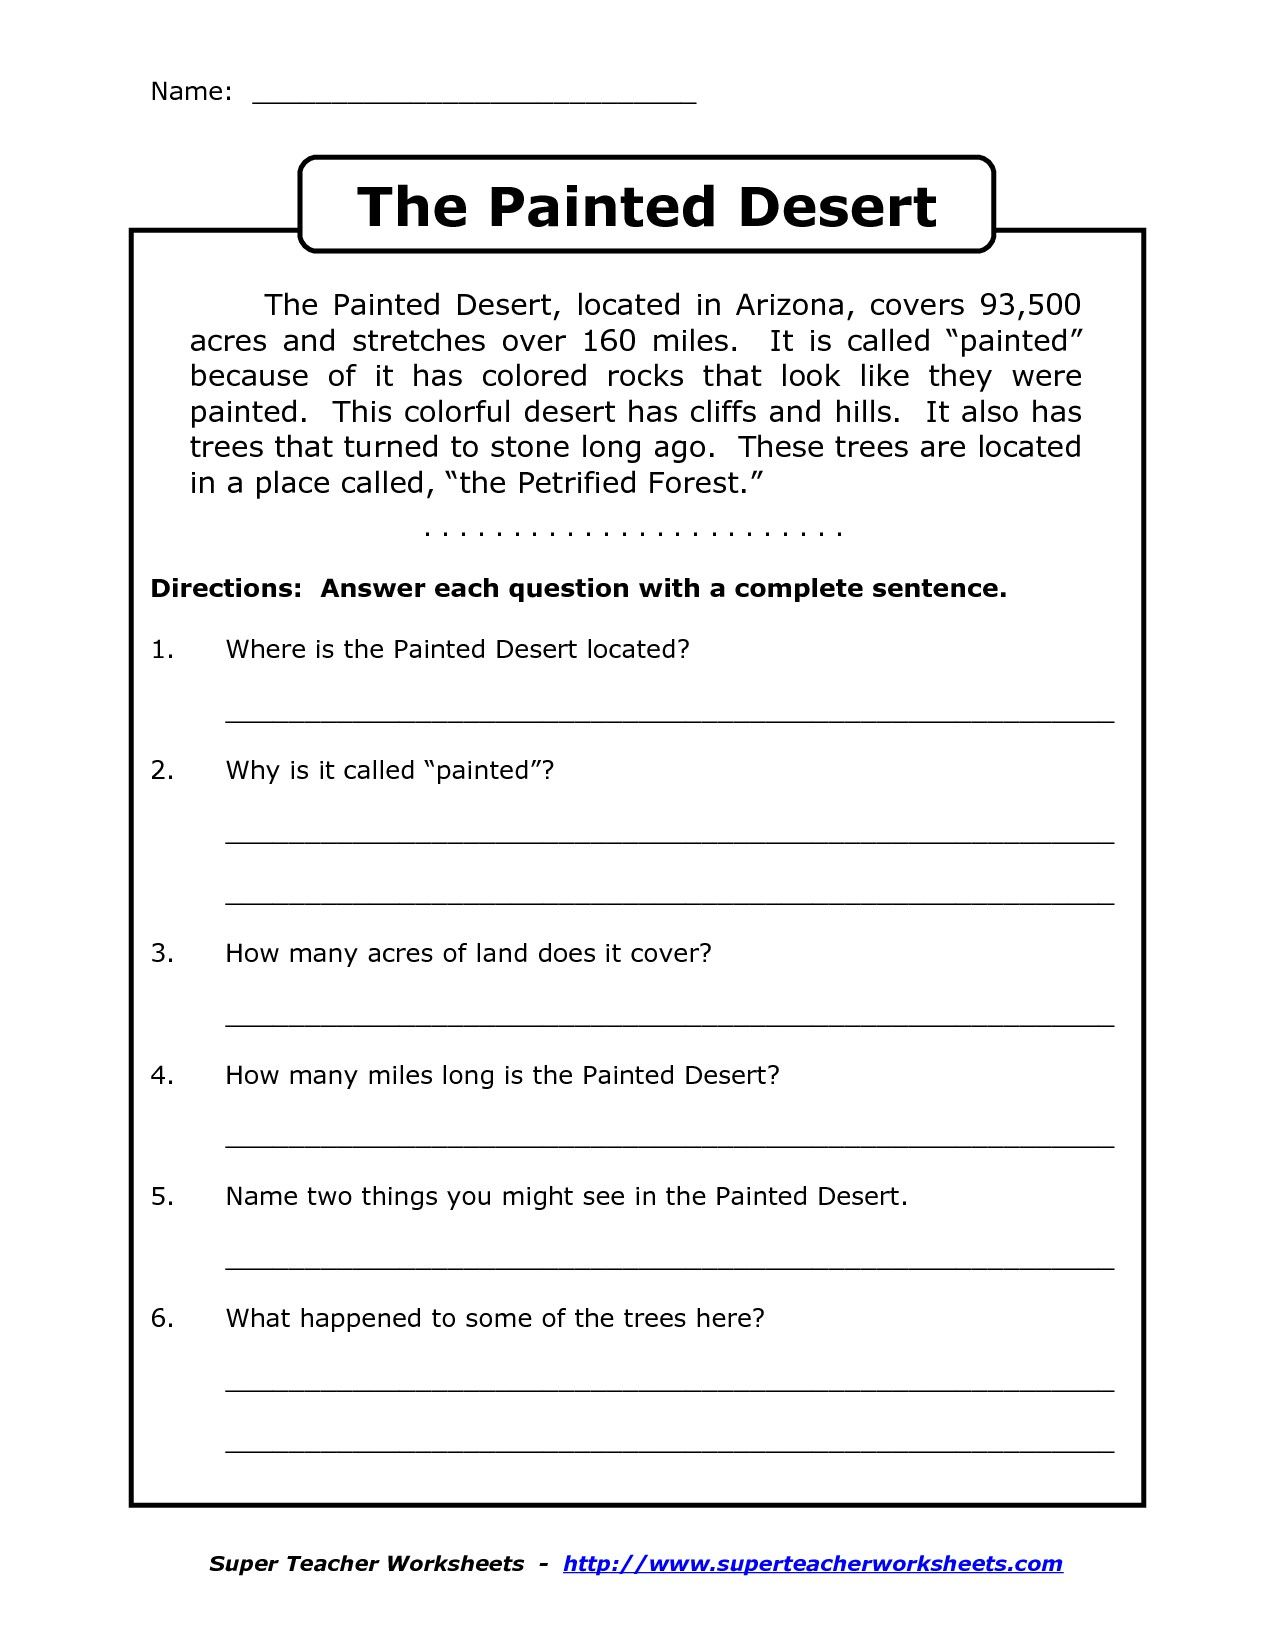 Worksheet Comprehension Passages For Grade 3 With Questions And Answers noconformity free worksheet printable comprehension passages 2nd grade reading worksheets 2 thedesigngrid 1000 images